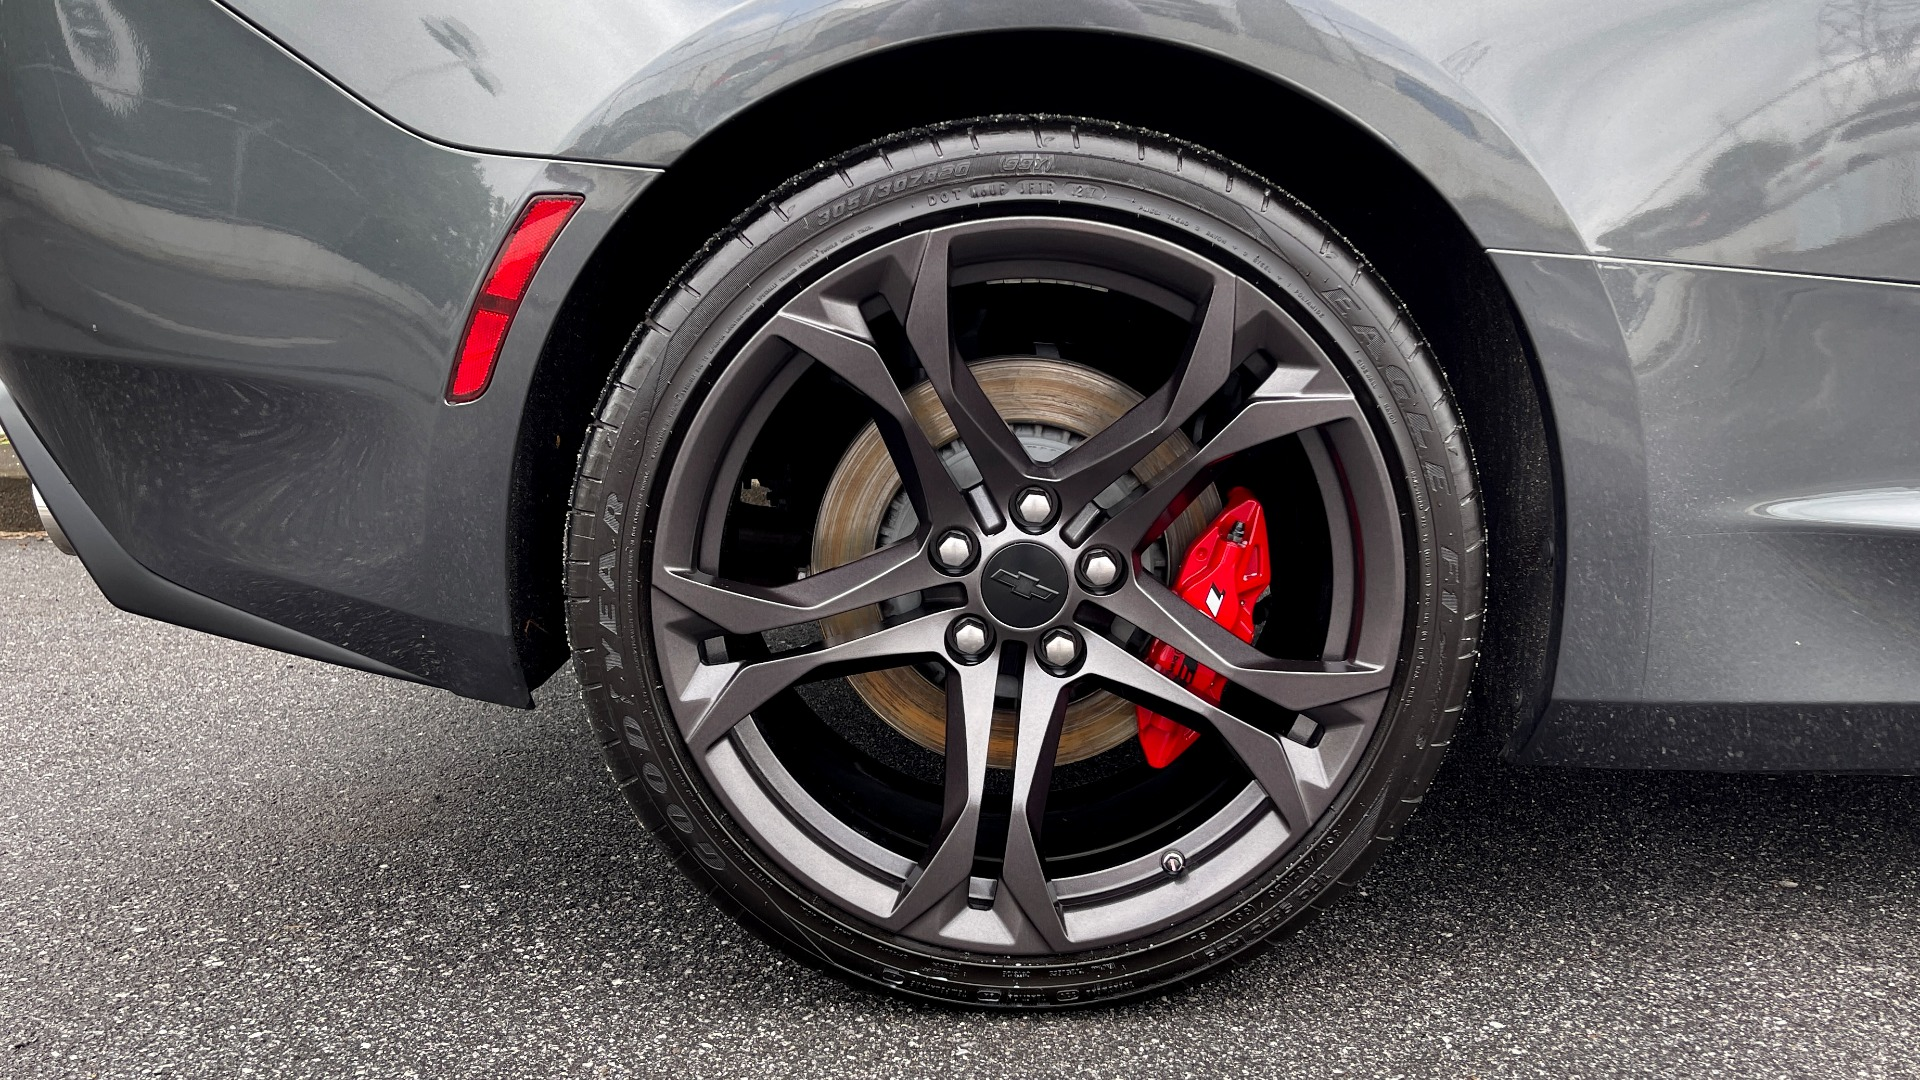 Used 2018 Chevrolet CAMARO 2SS / 6.2L V8 / MANUAL / 1LE TRACK PKG / NAV / BOSE / REARVIEW for sale $39,795 at Formula Imports in Charlotte NC 28227 55